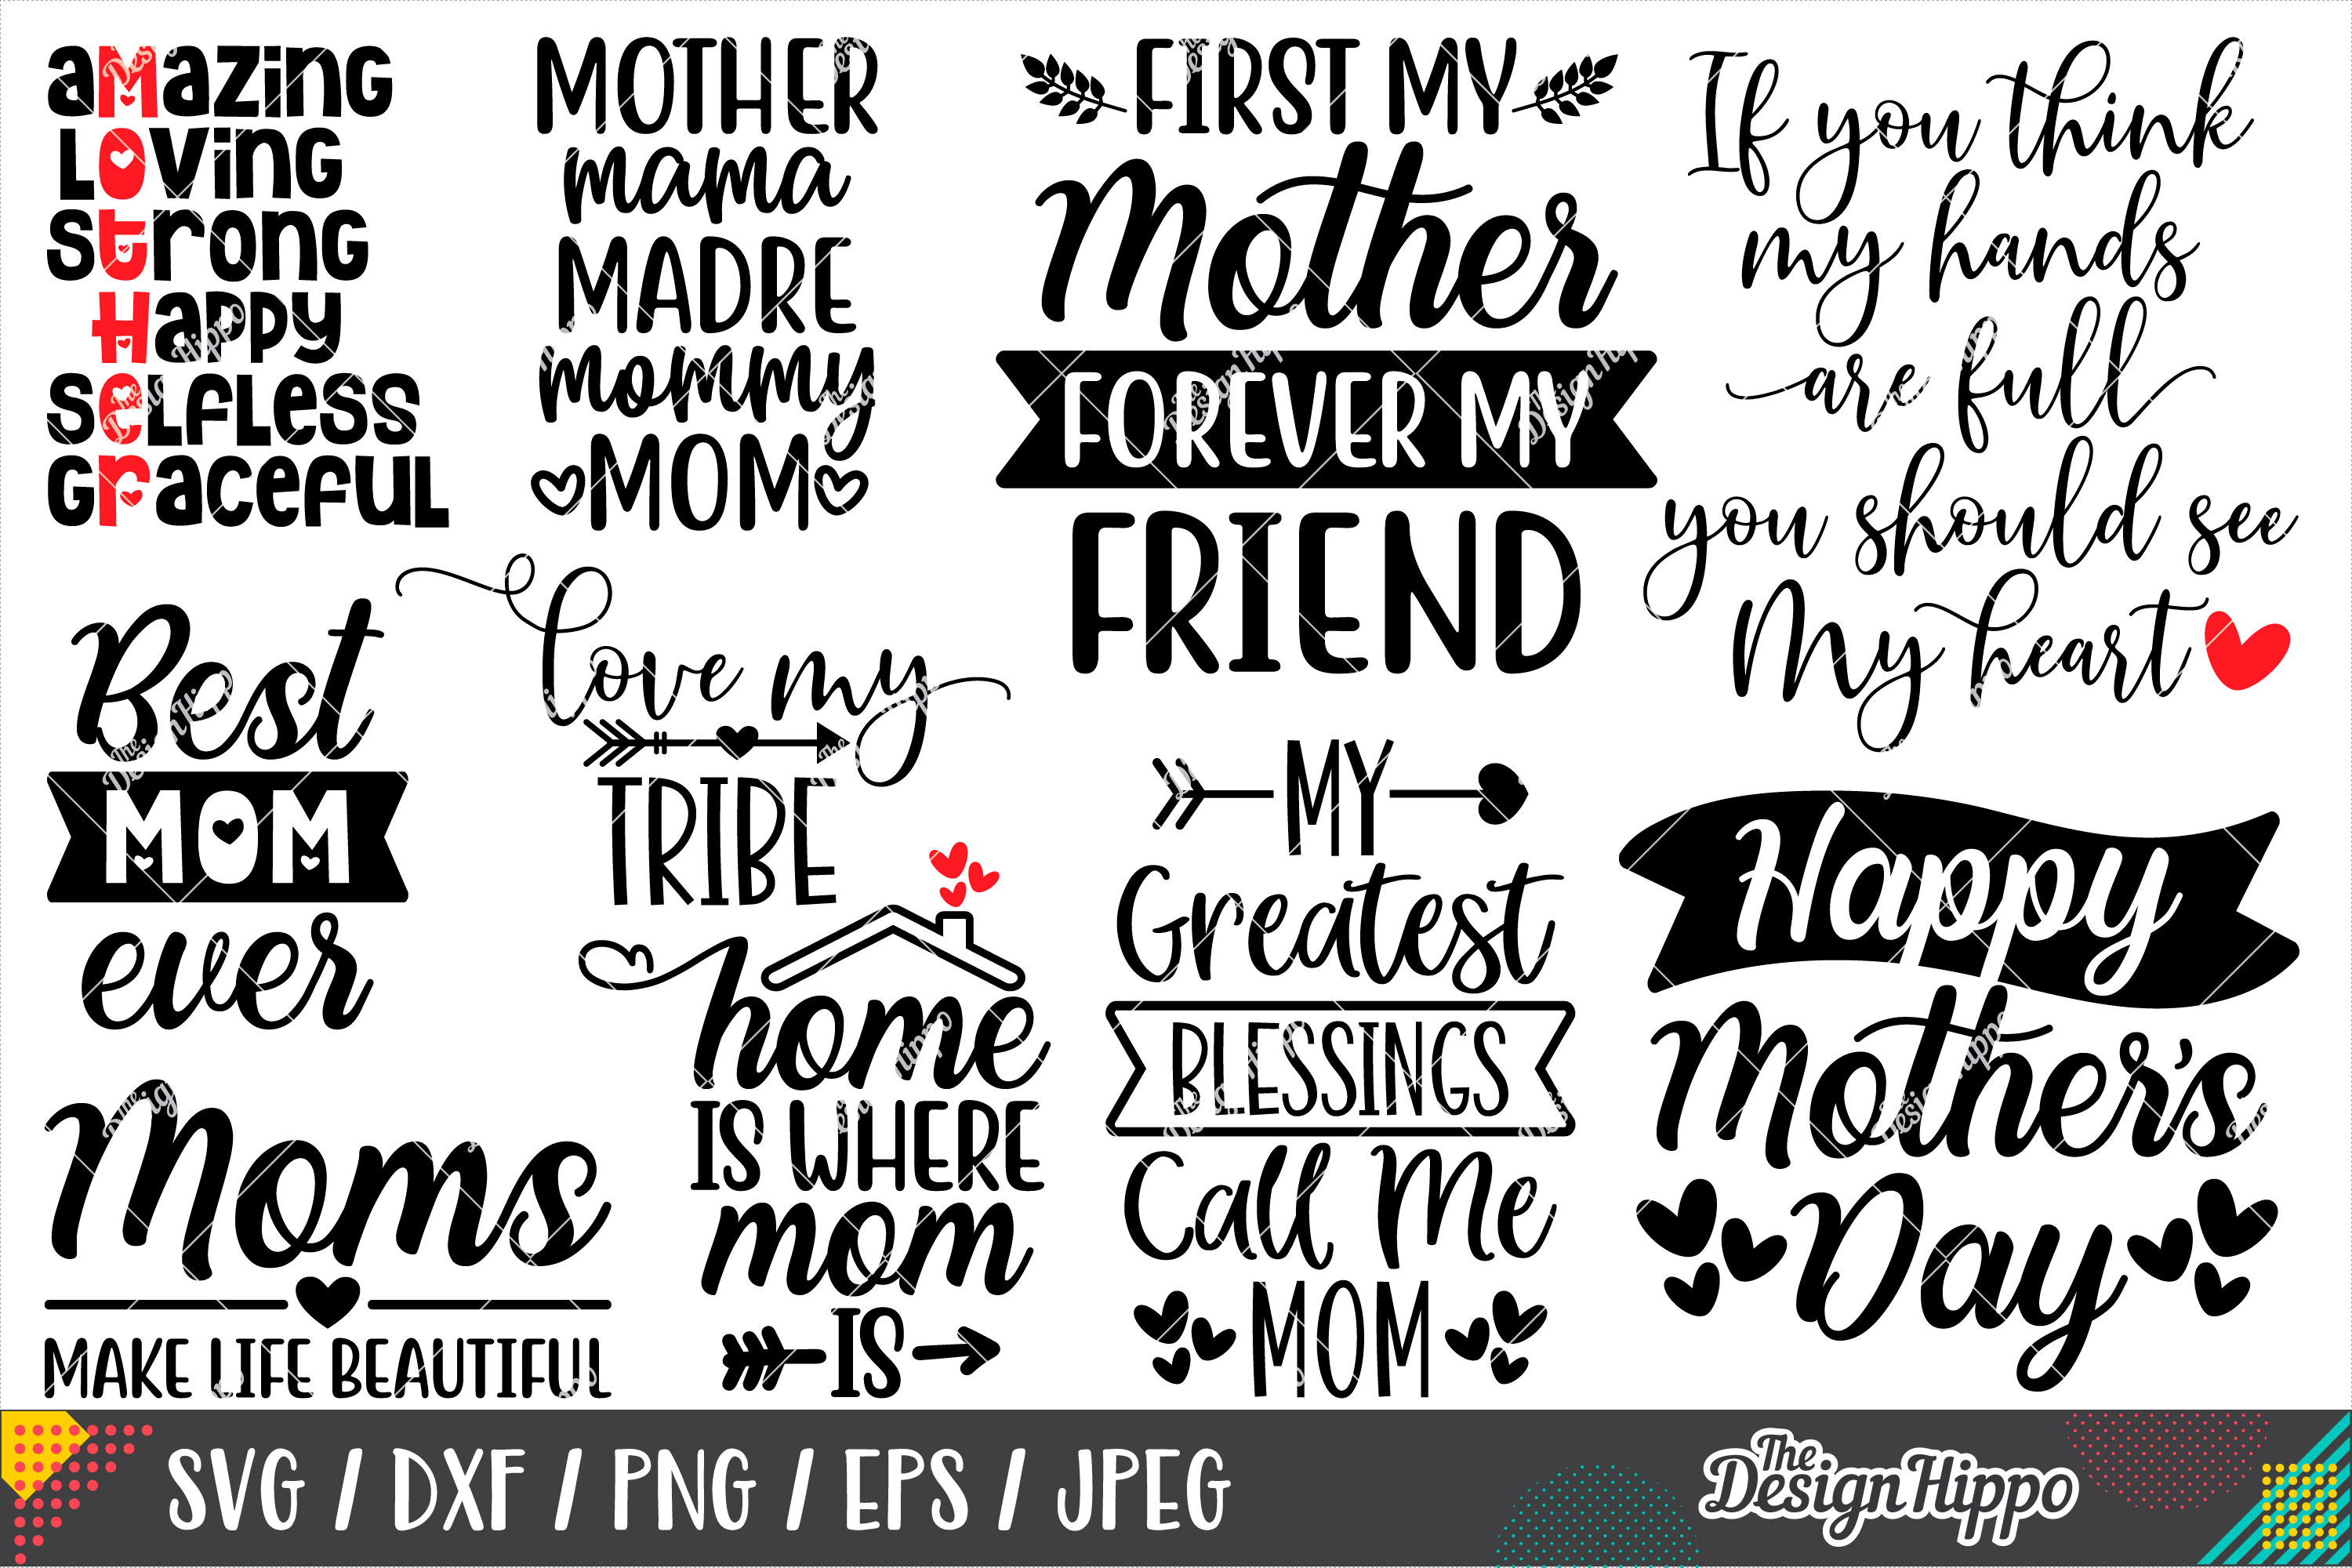 Mom Quotes SVG Bundle, 20 Designs, SVG PNG DXF Cutting Files example image 2